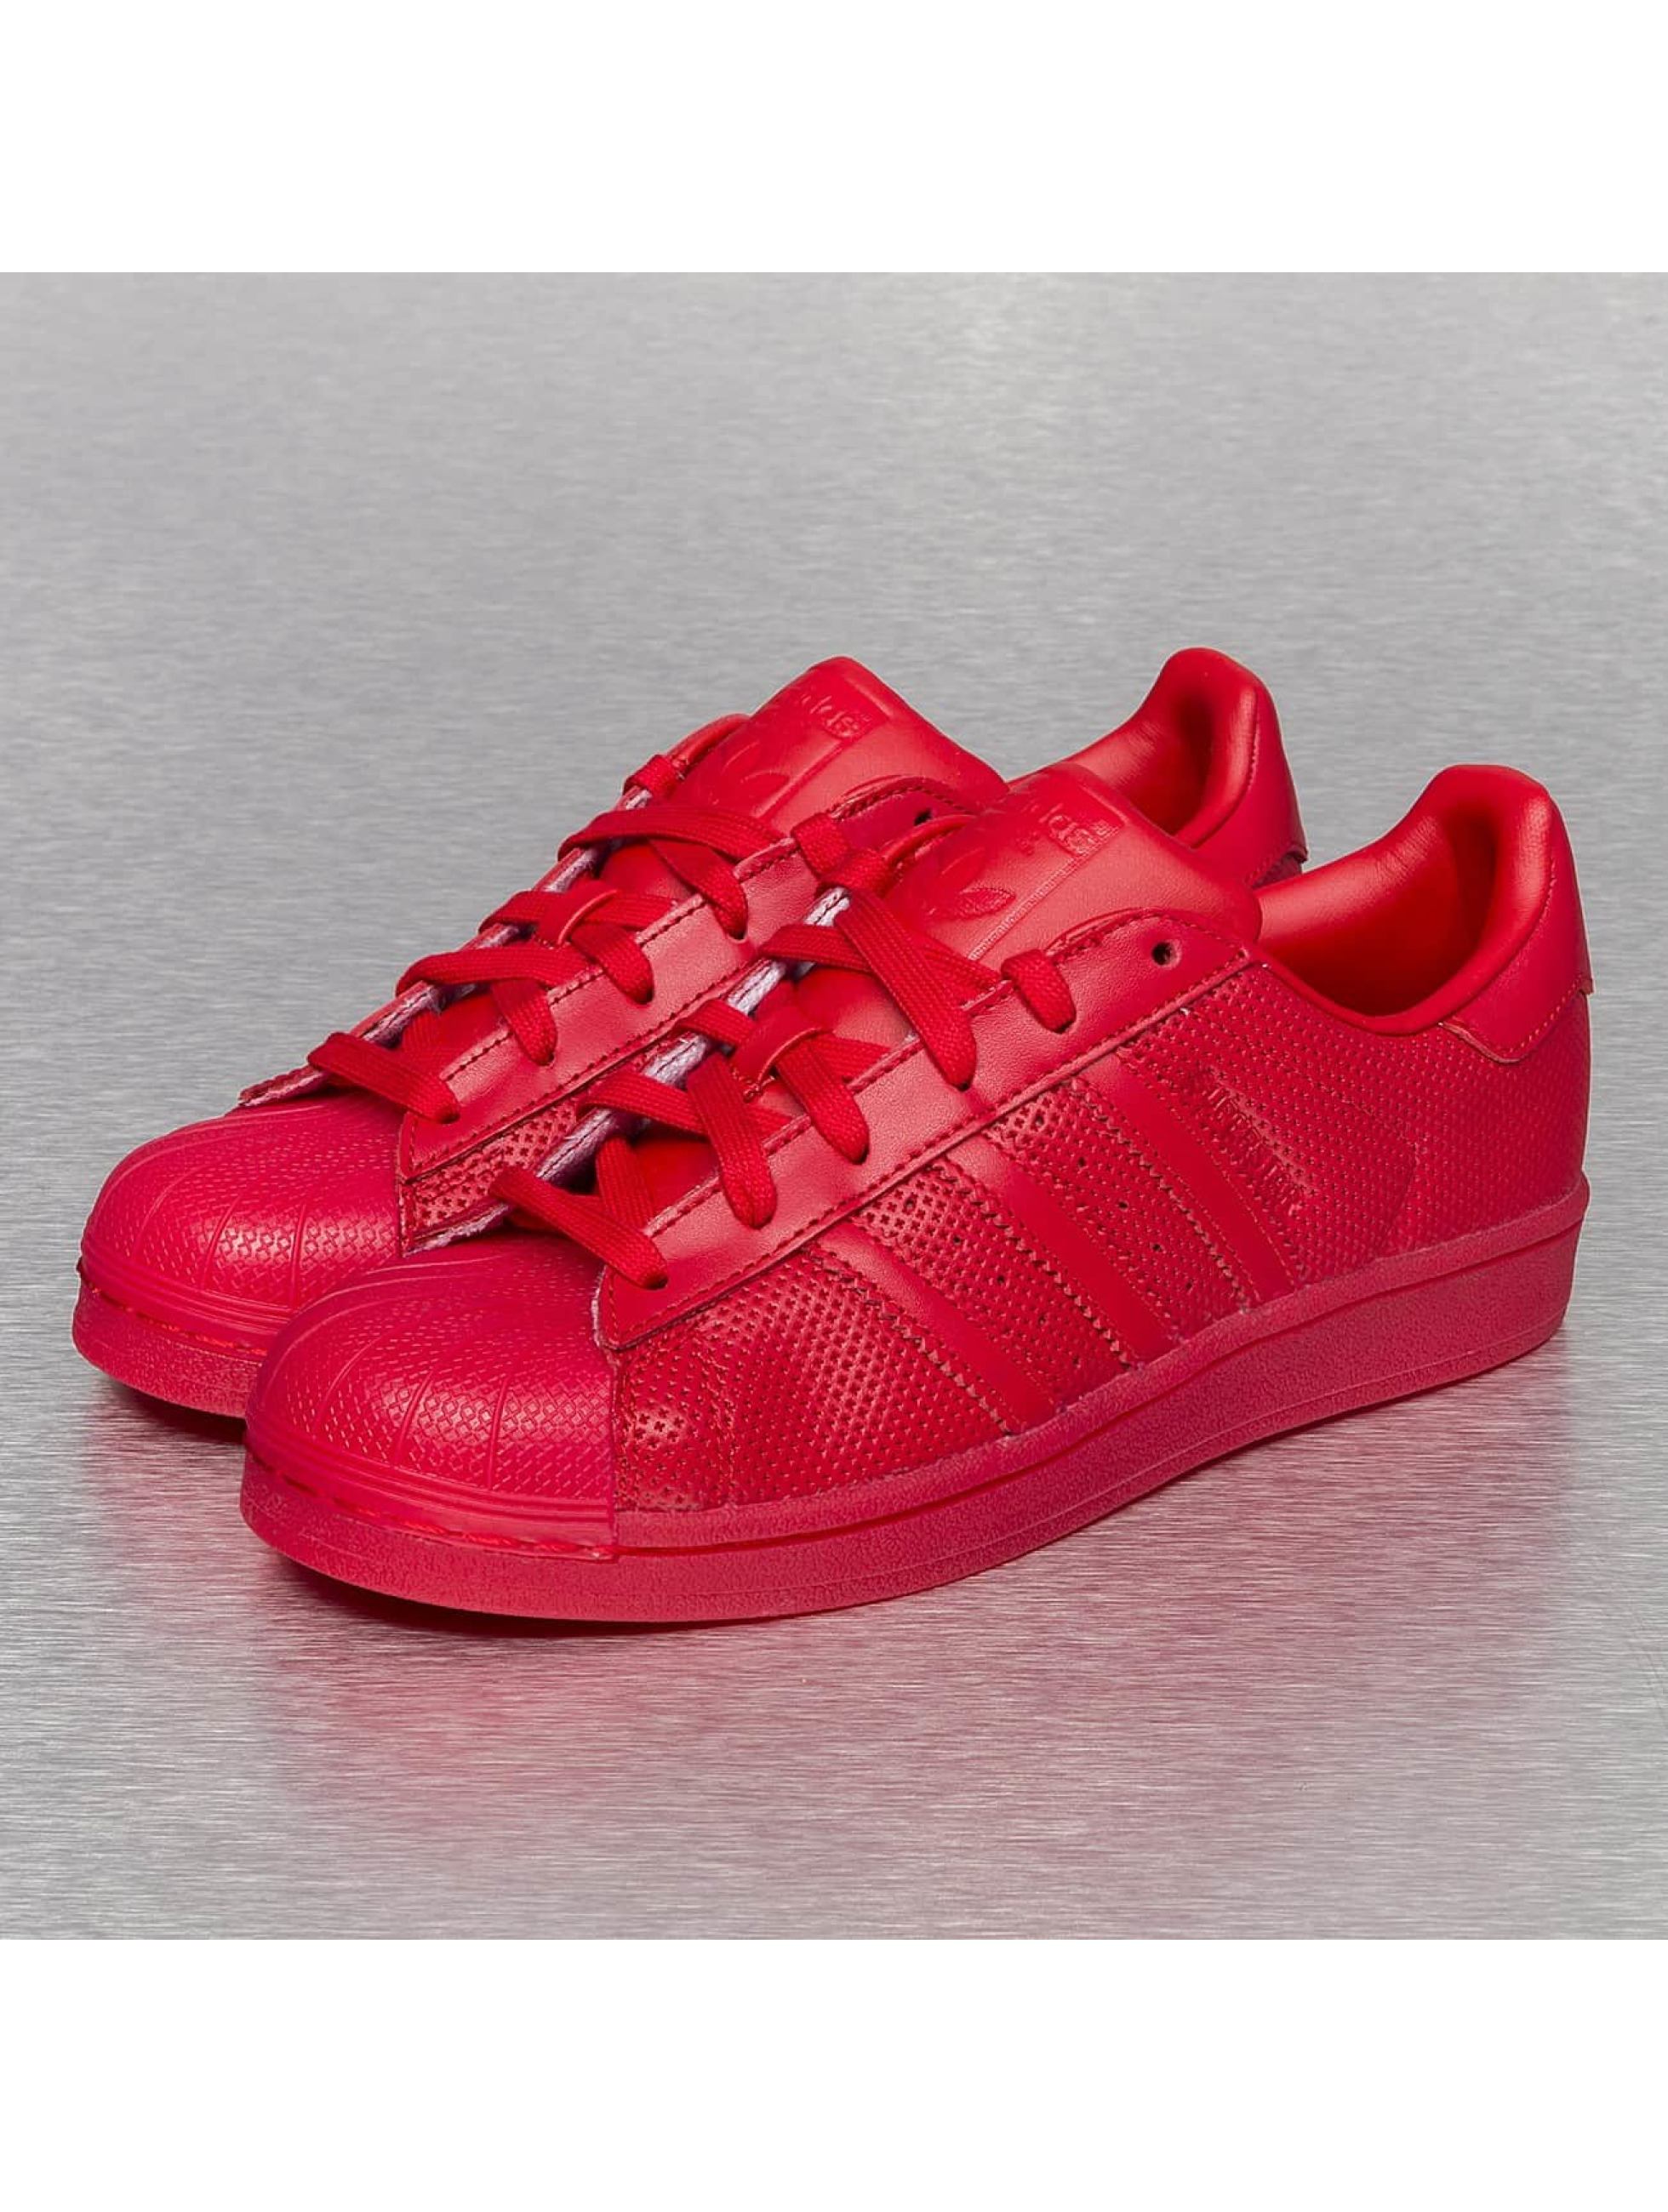 adidas chaussures baskets superstar adicolor en rouge 230363. Black Bedroom Furniture Sets. Home Design Ideas